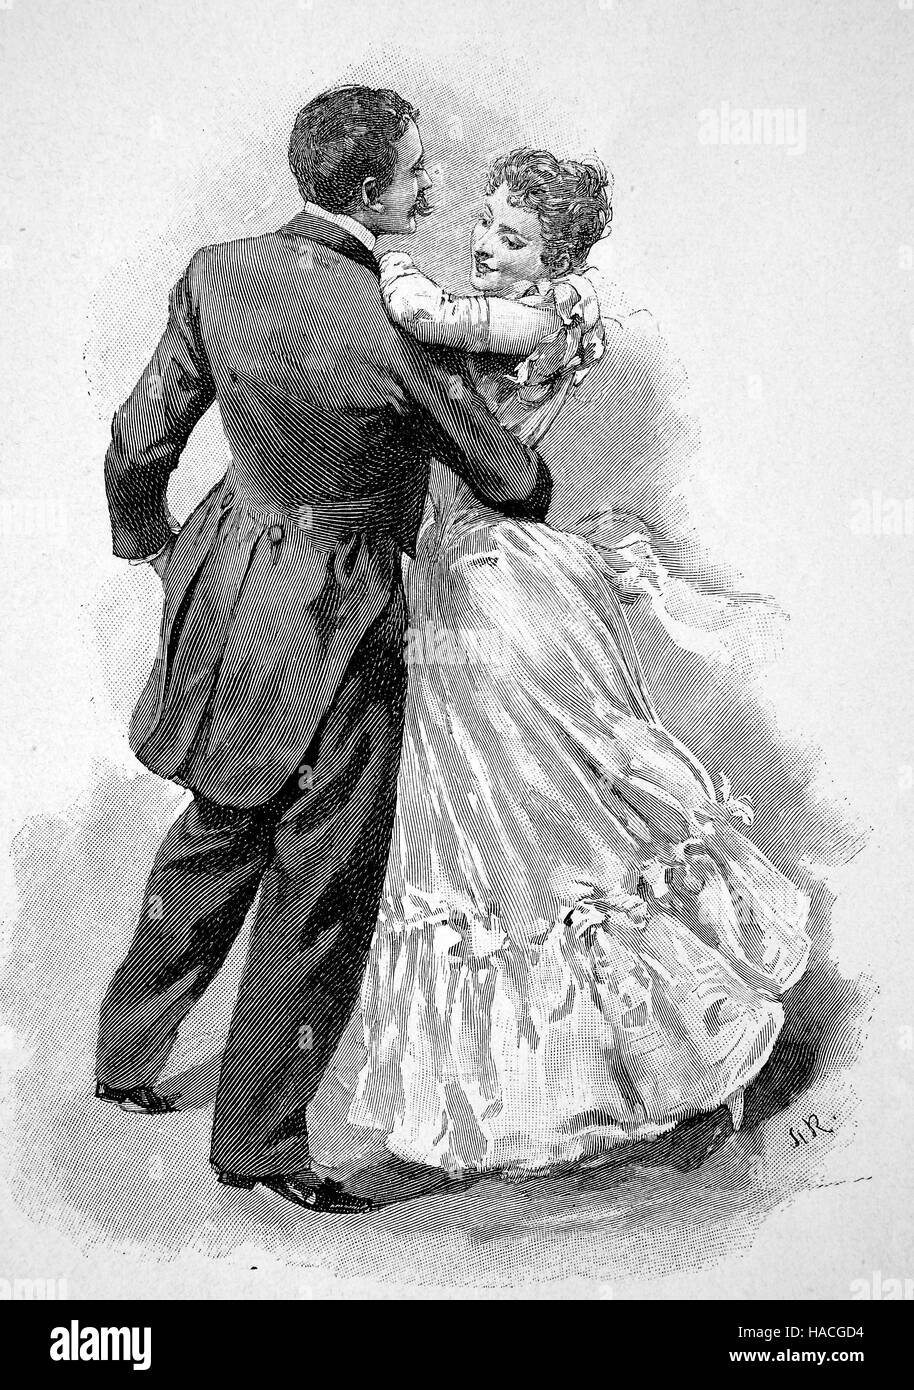 couple dancing the Laendler, a folk dance of Austria, Germany and Switzerland, historic illustration, woodcut - Stock Image